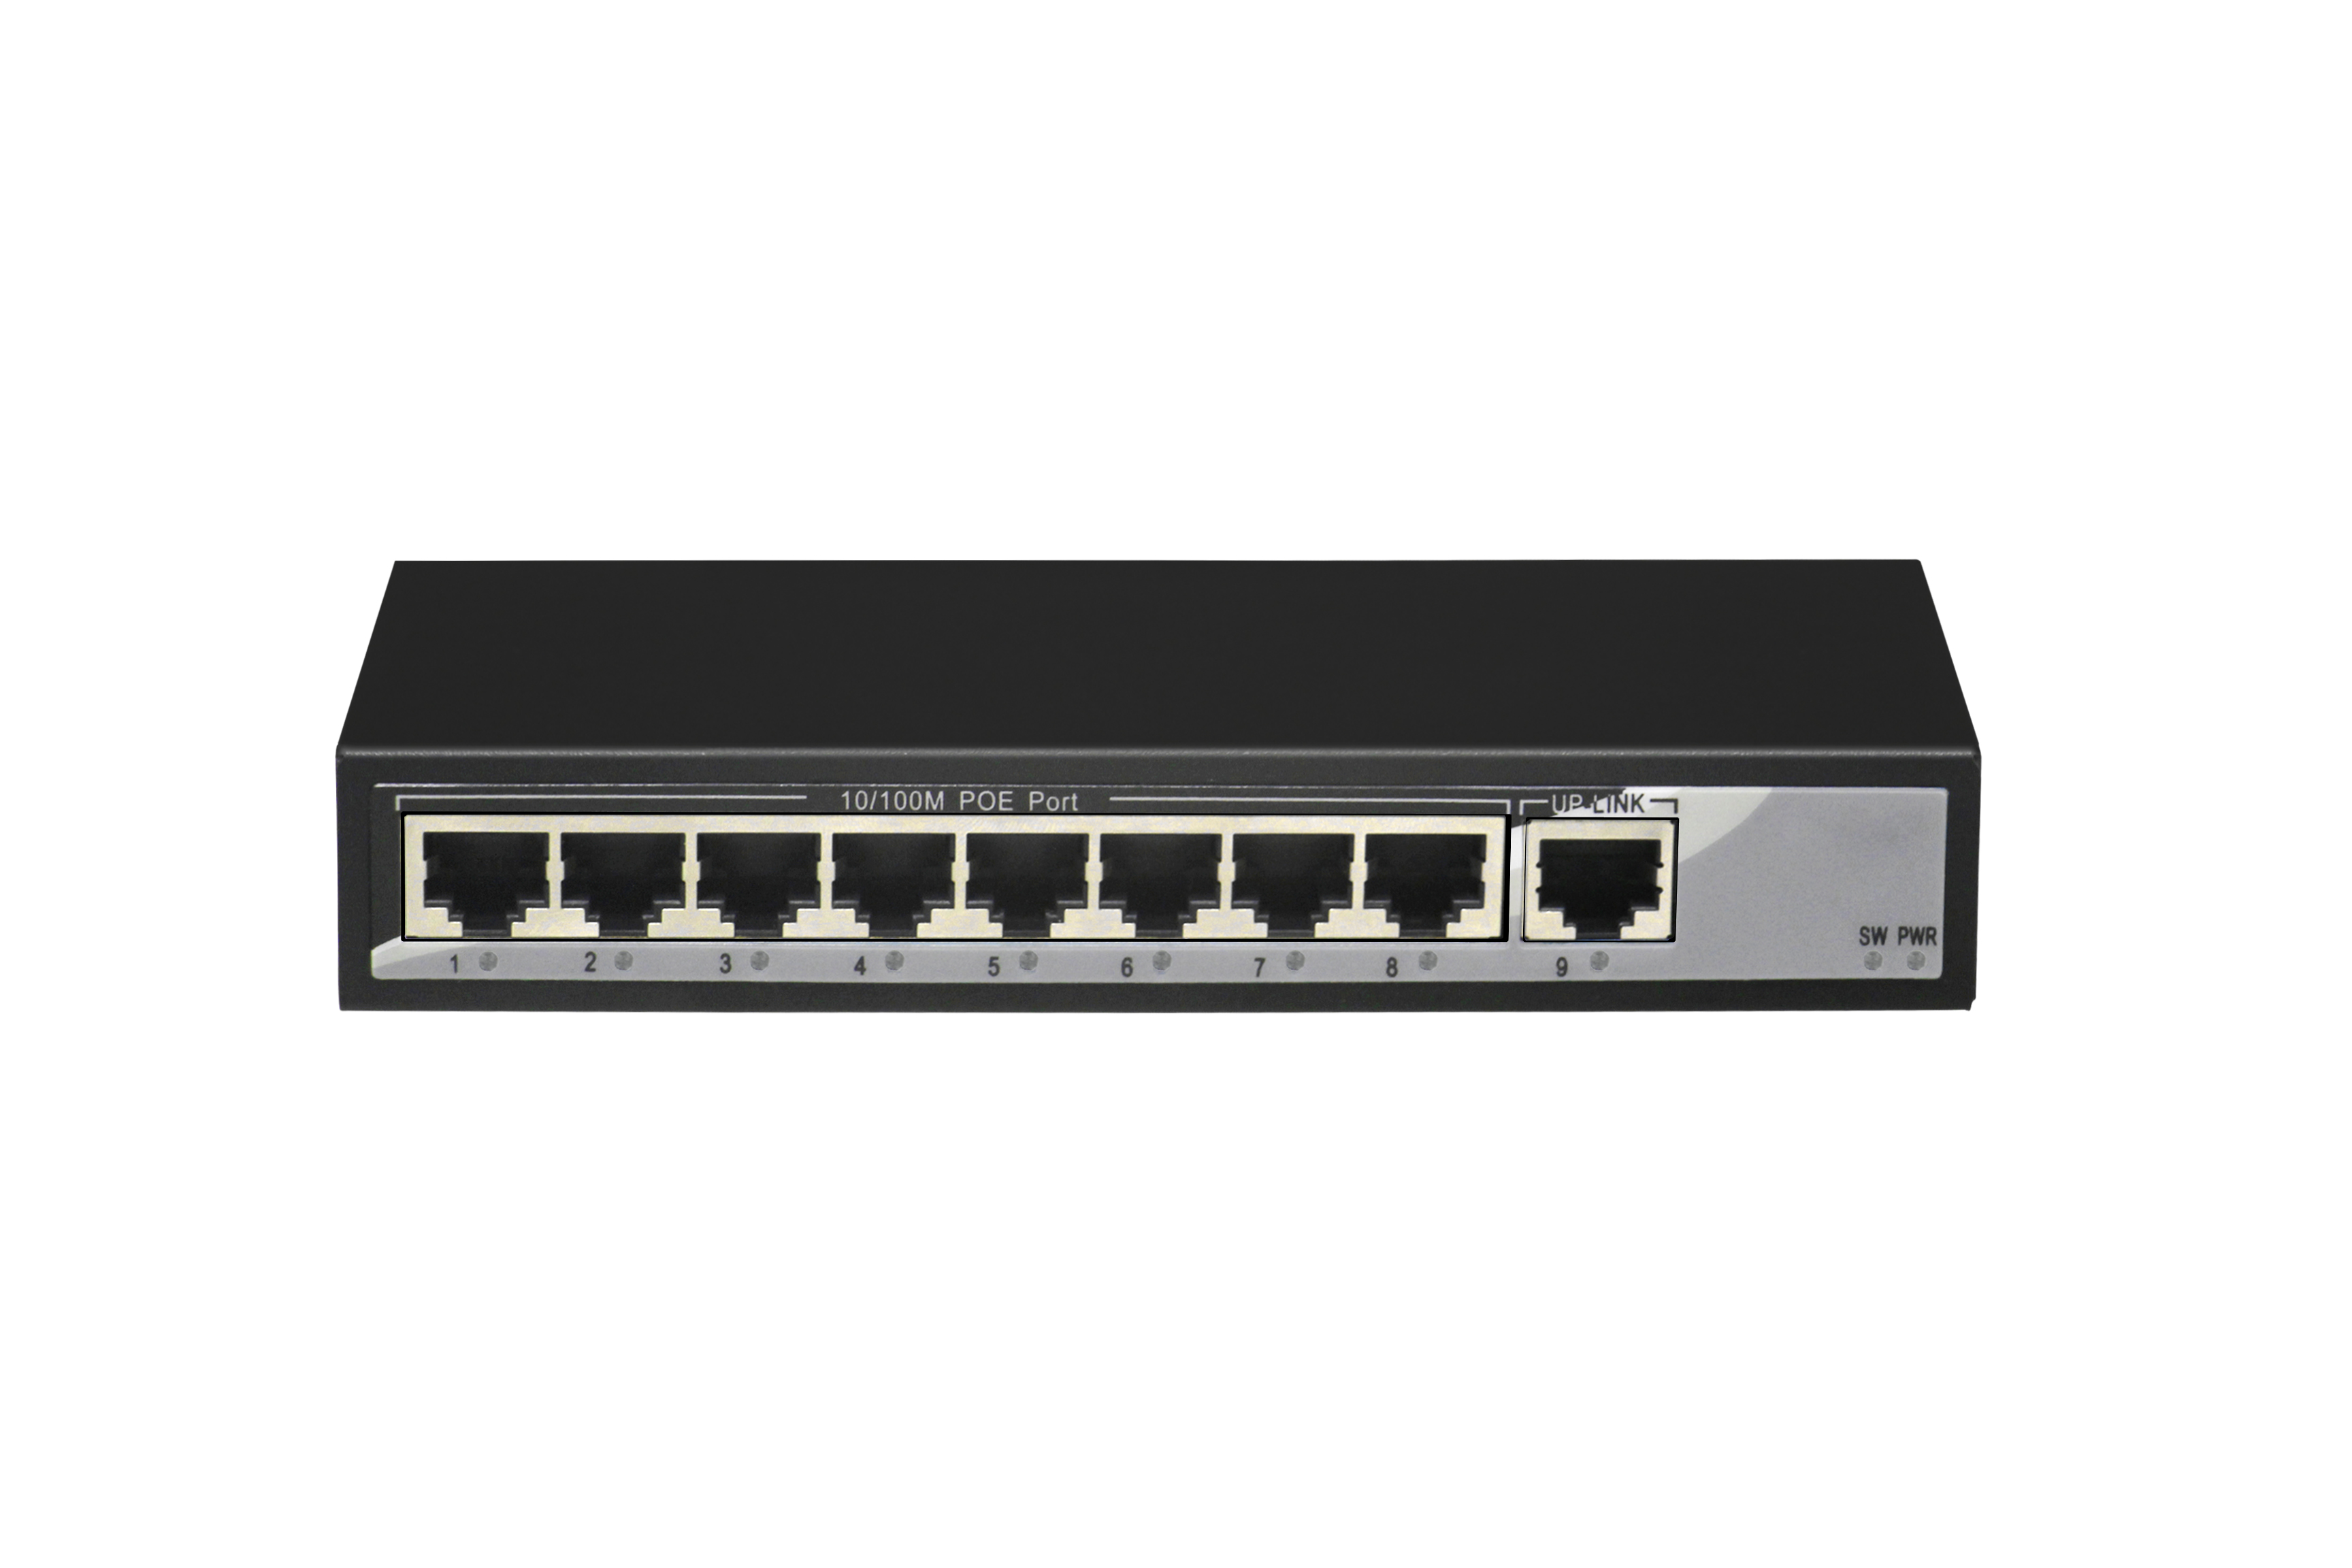 9-port 10/100M switch, of which 1-8 ports support POE, IEEE 802.3af international standard, external total power 104W